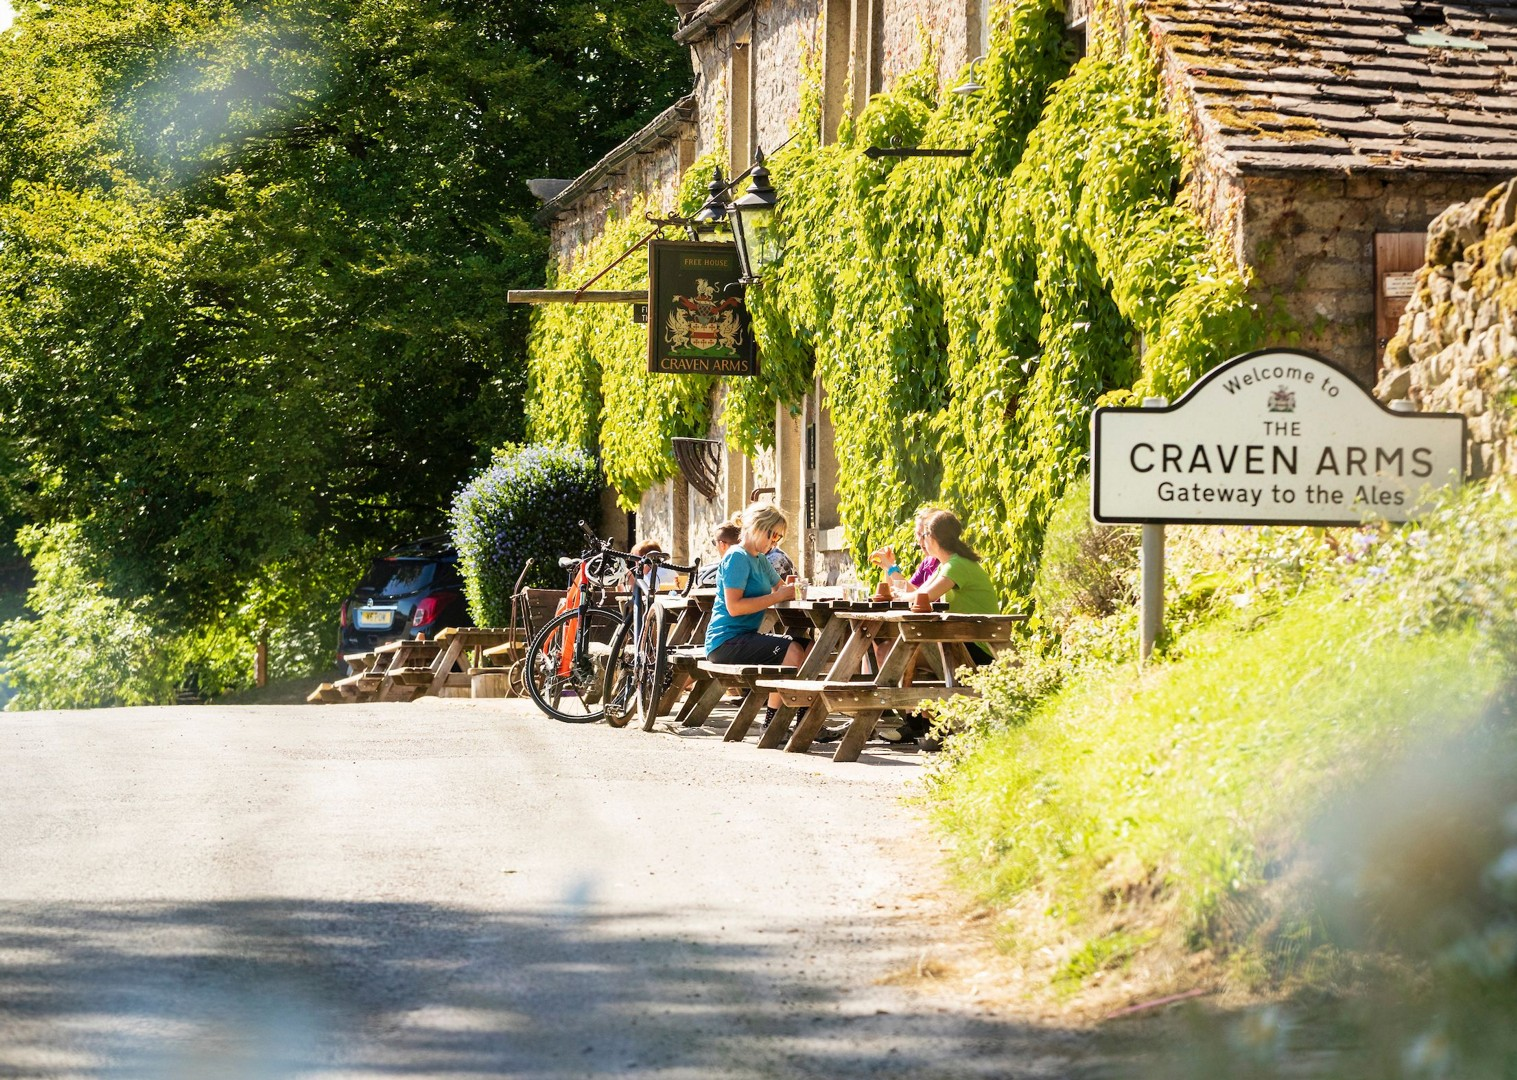 craven-arms-local-pubs-yorkshire-uk-cycling-tour.jpg - UK - Way of the Roses - Supported Leisure Cycling Holiday - Leisure Cycling